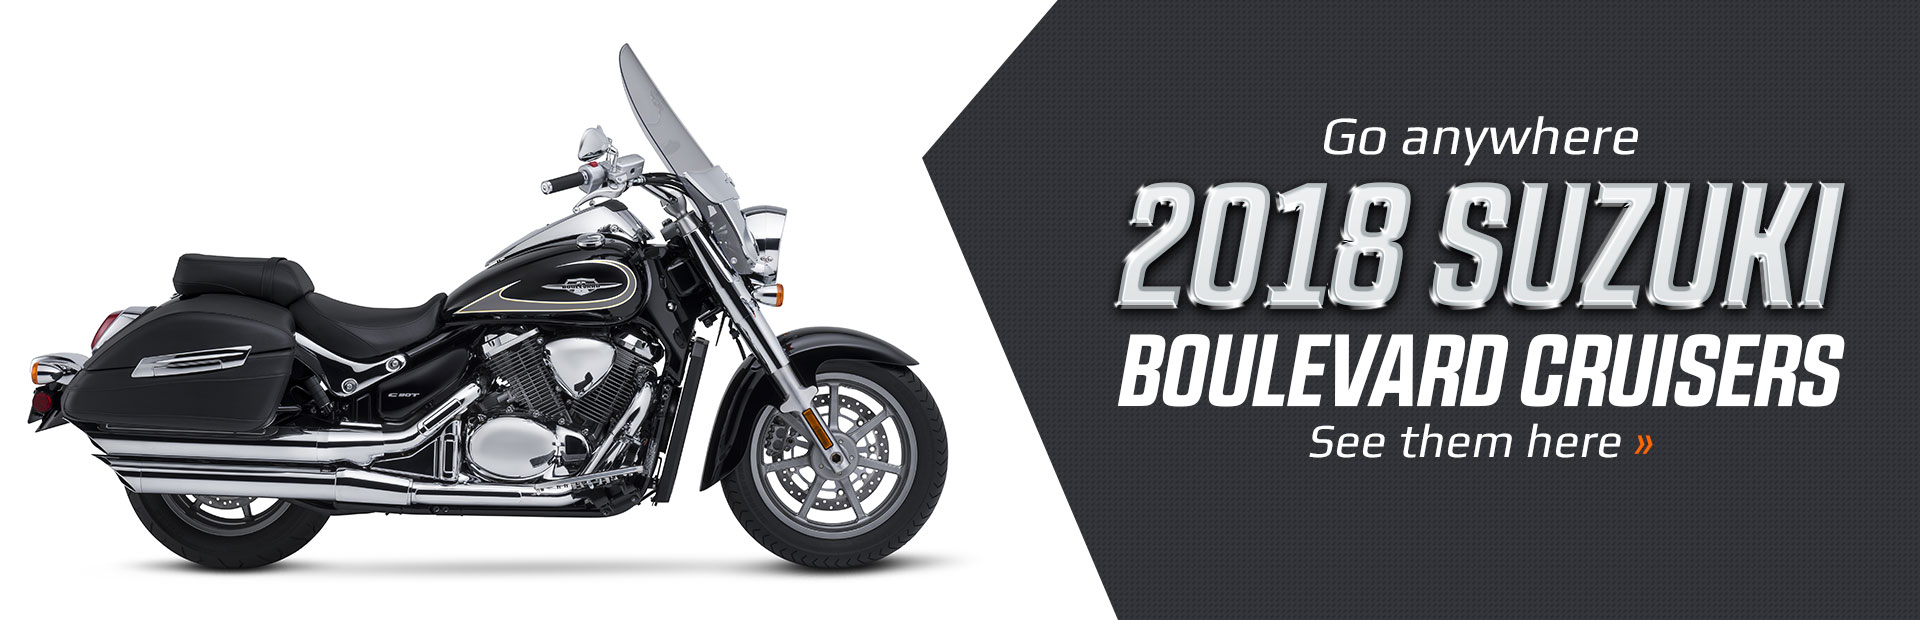 2018 Suzuki Boulevard Cruisers: Click here to view the lineup.